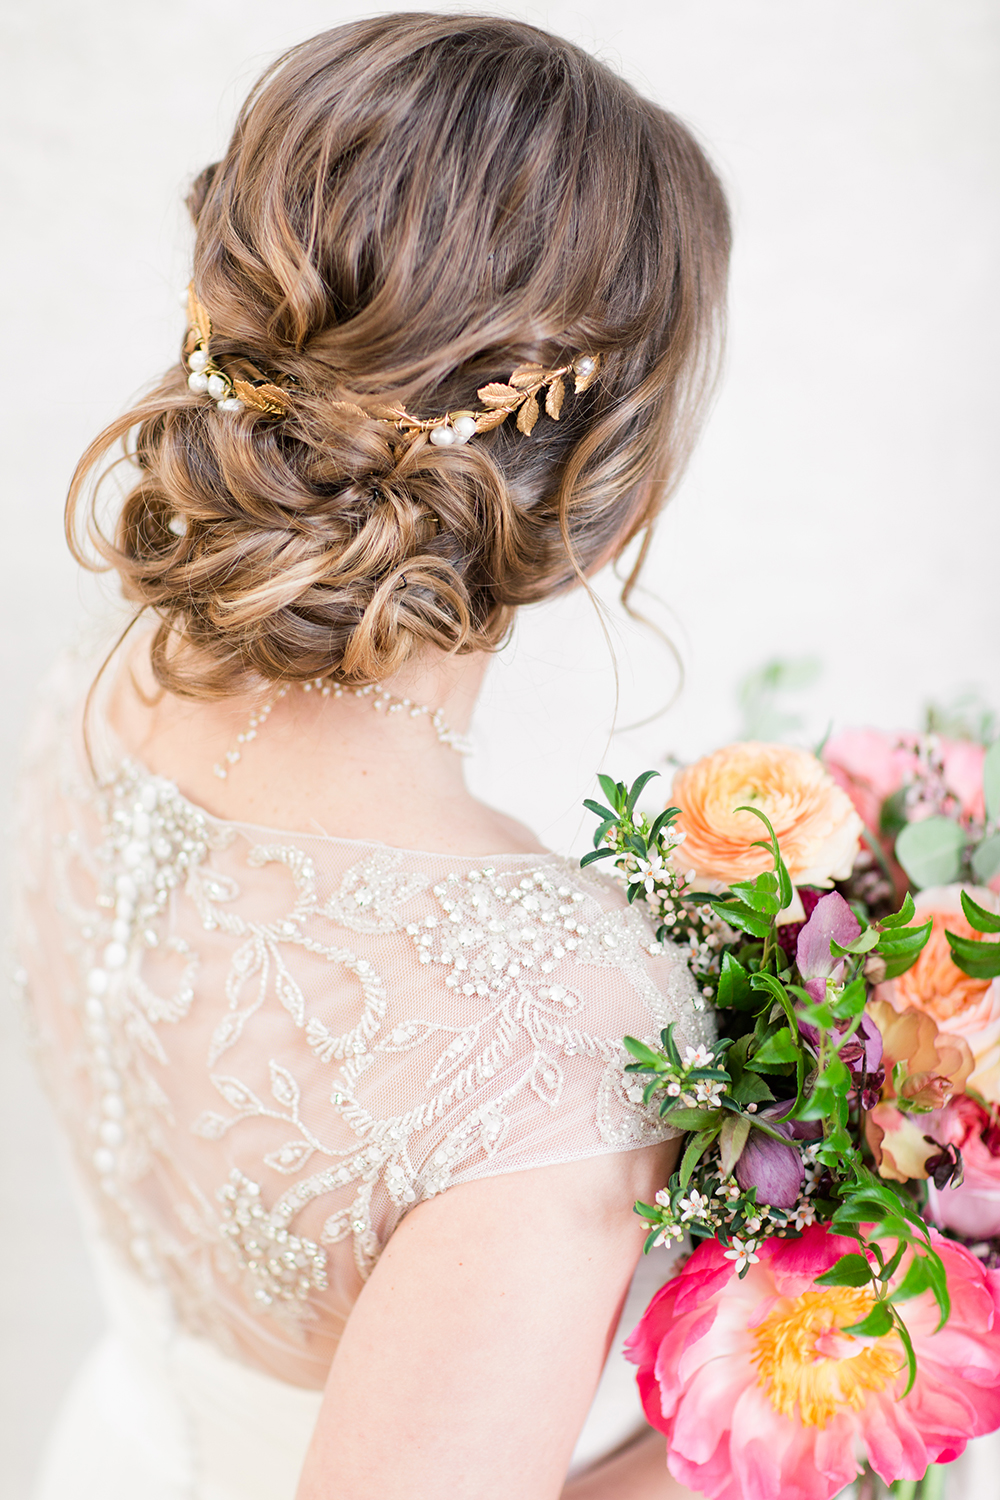 wedding hair - photo by Lauren Lee Photography http://ruffledblog.com/modern-grecian-inspired-wedding-ideas